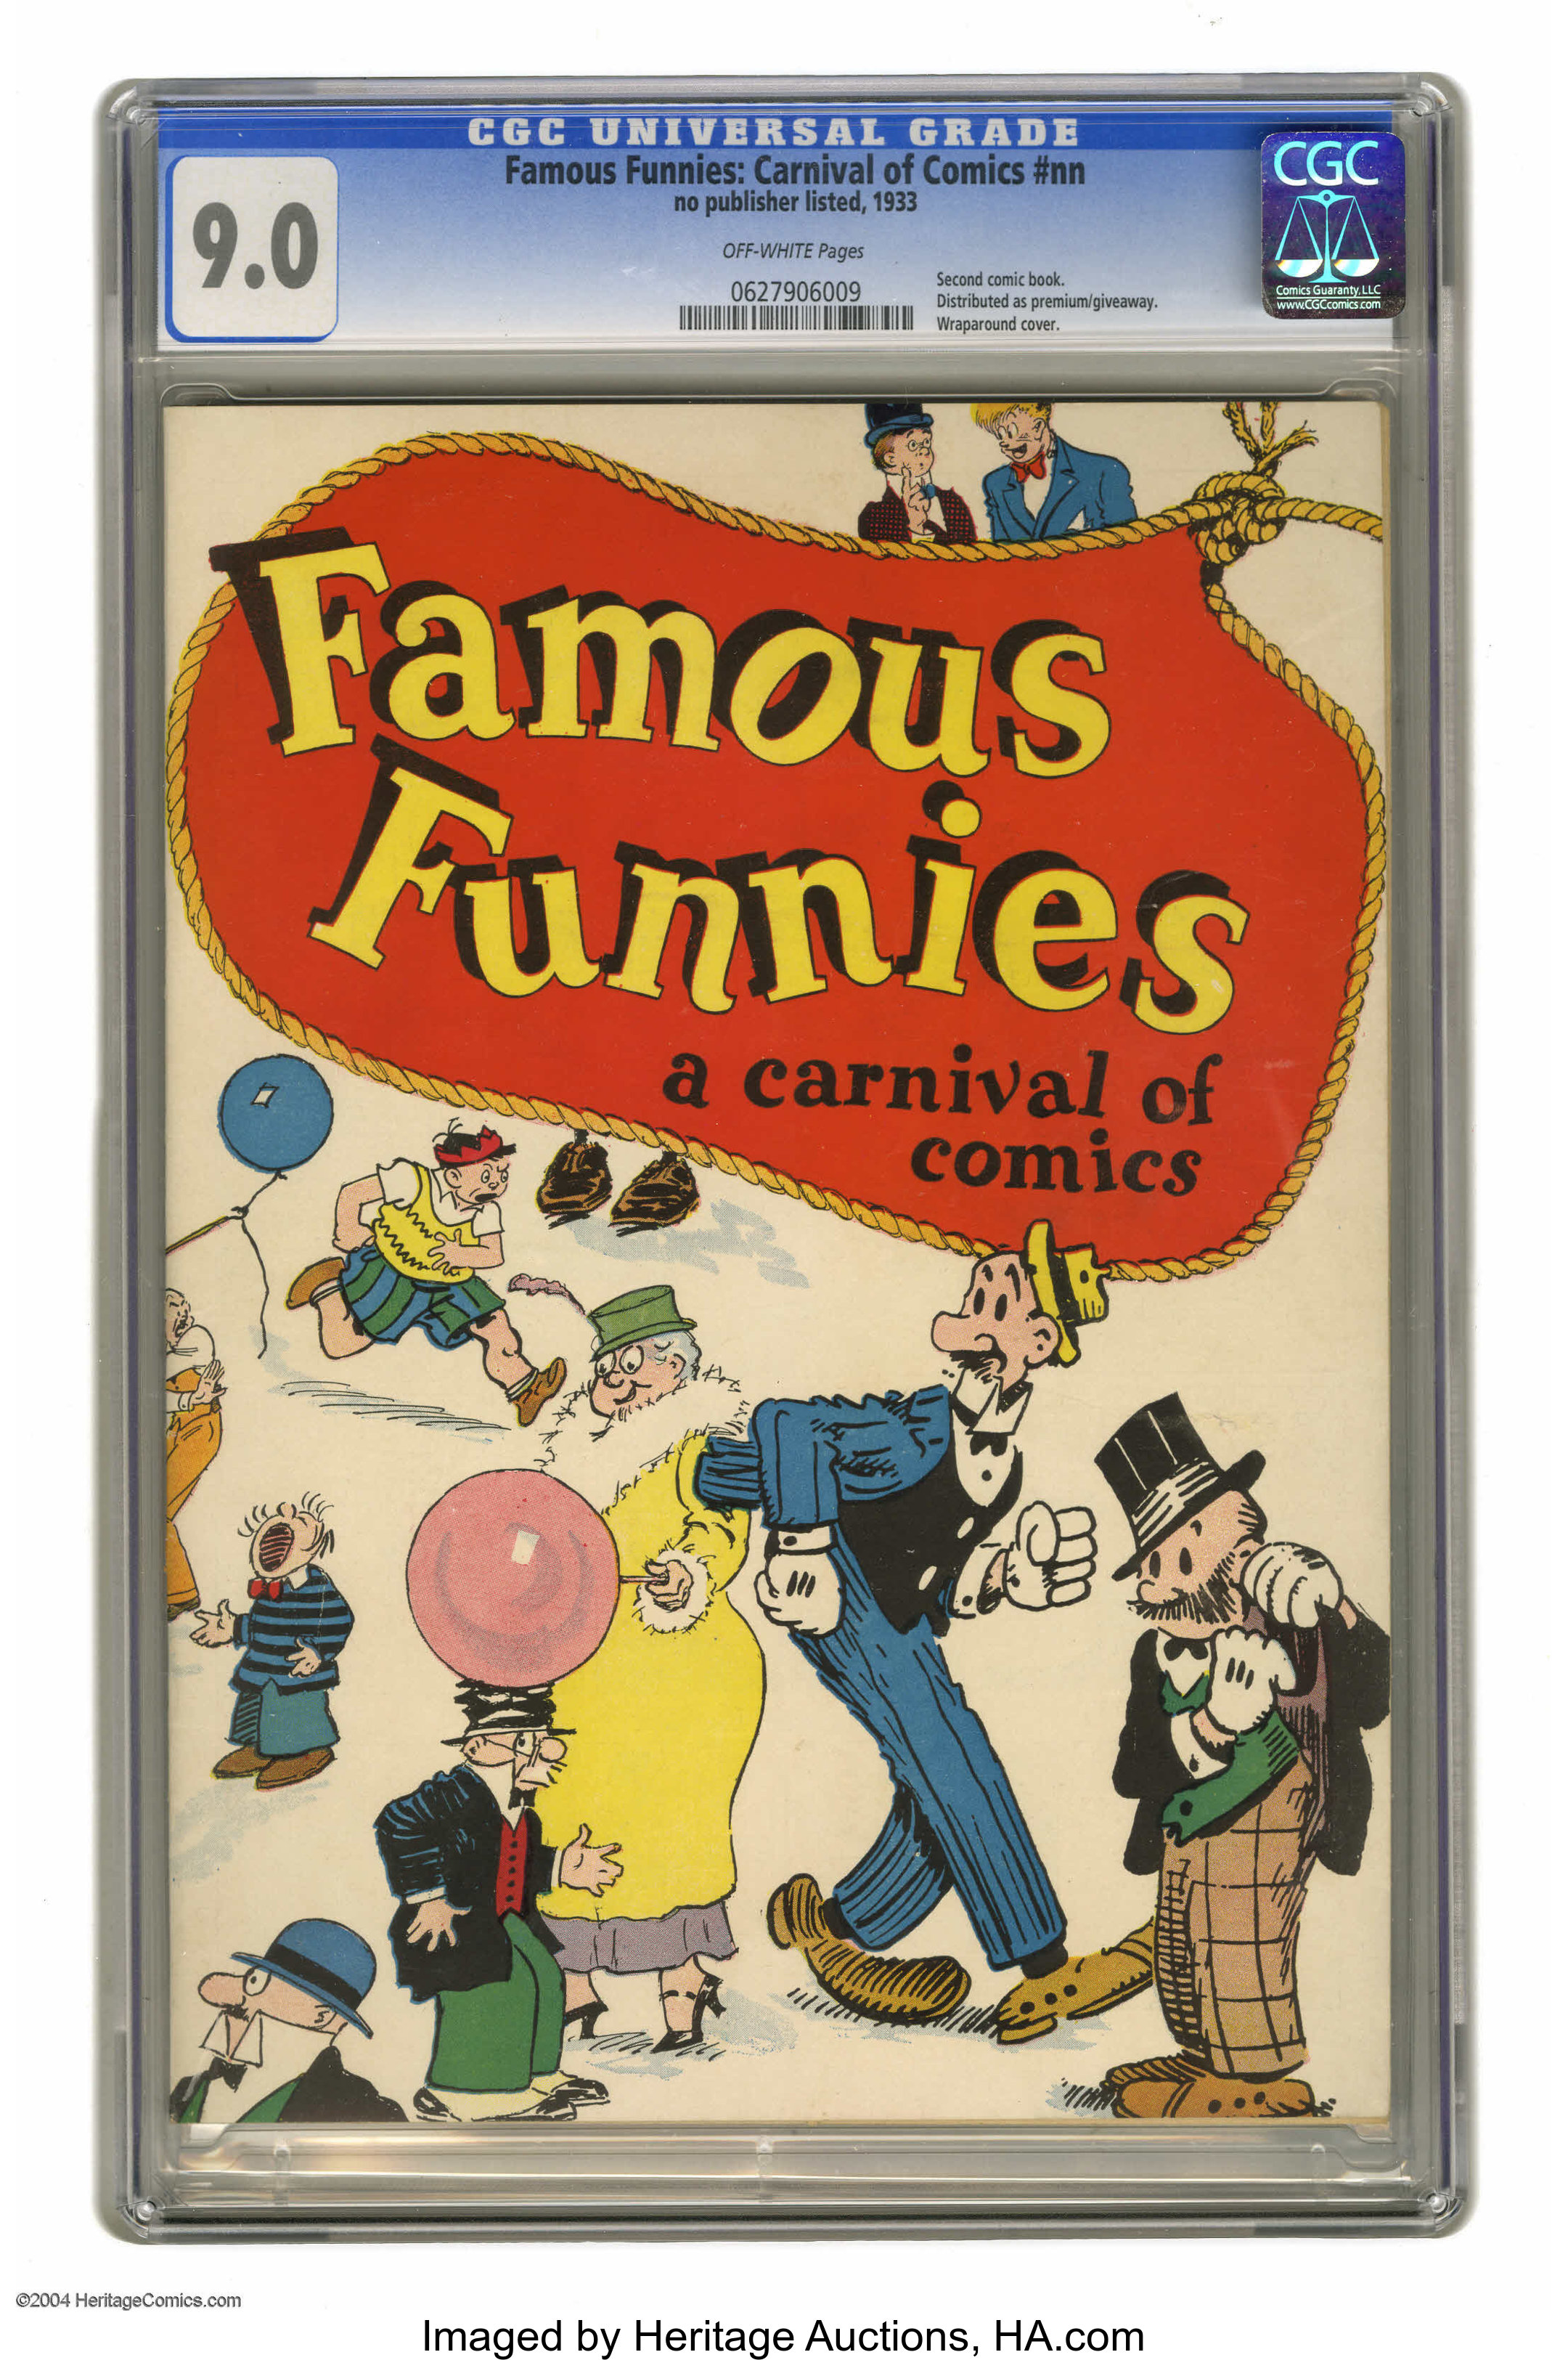 Famous Funnies: Carnival of Comics #nn (Eastern Color, 1933